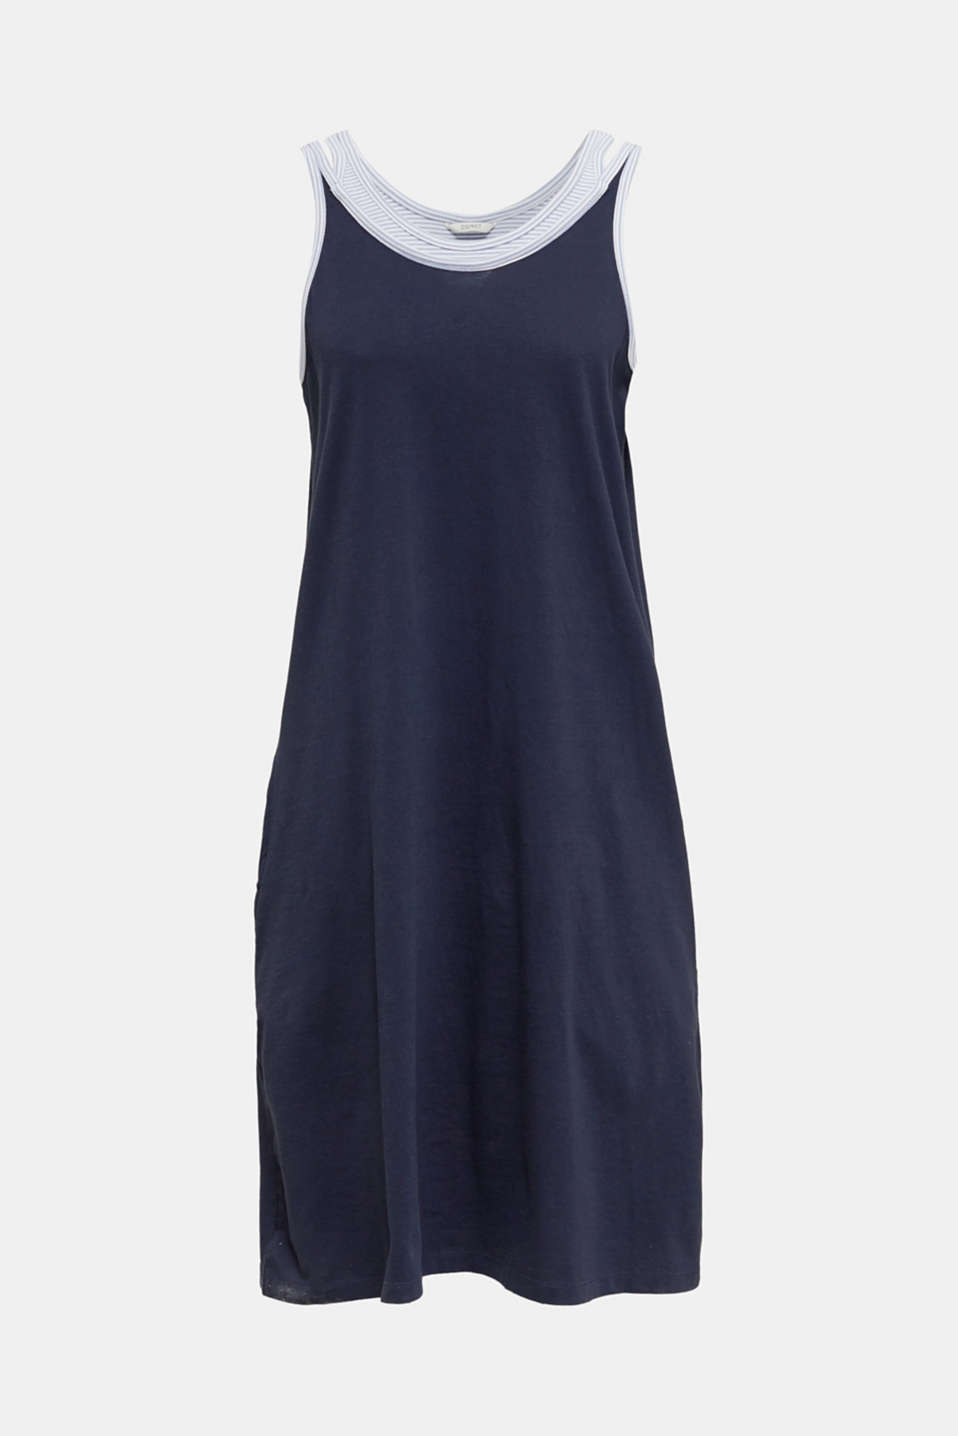 Jersey nightshirt with layering, 100% cotton, NAVY 2, detail image number 6